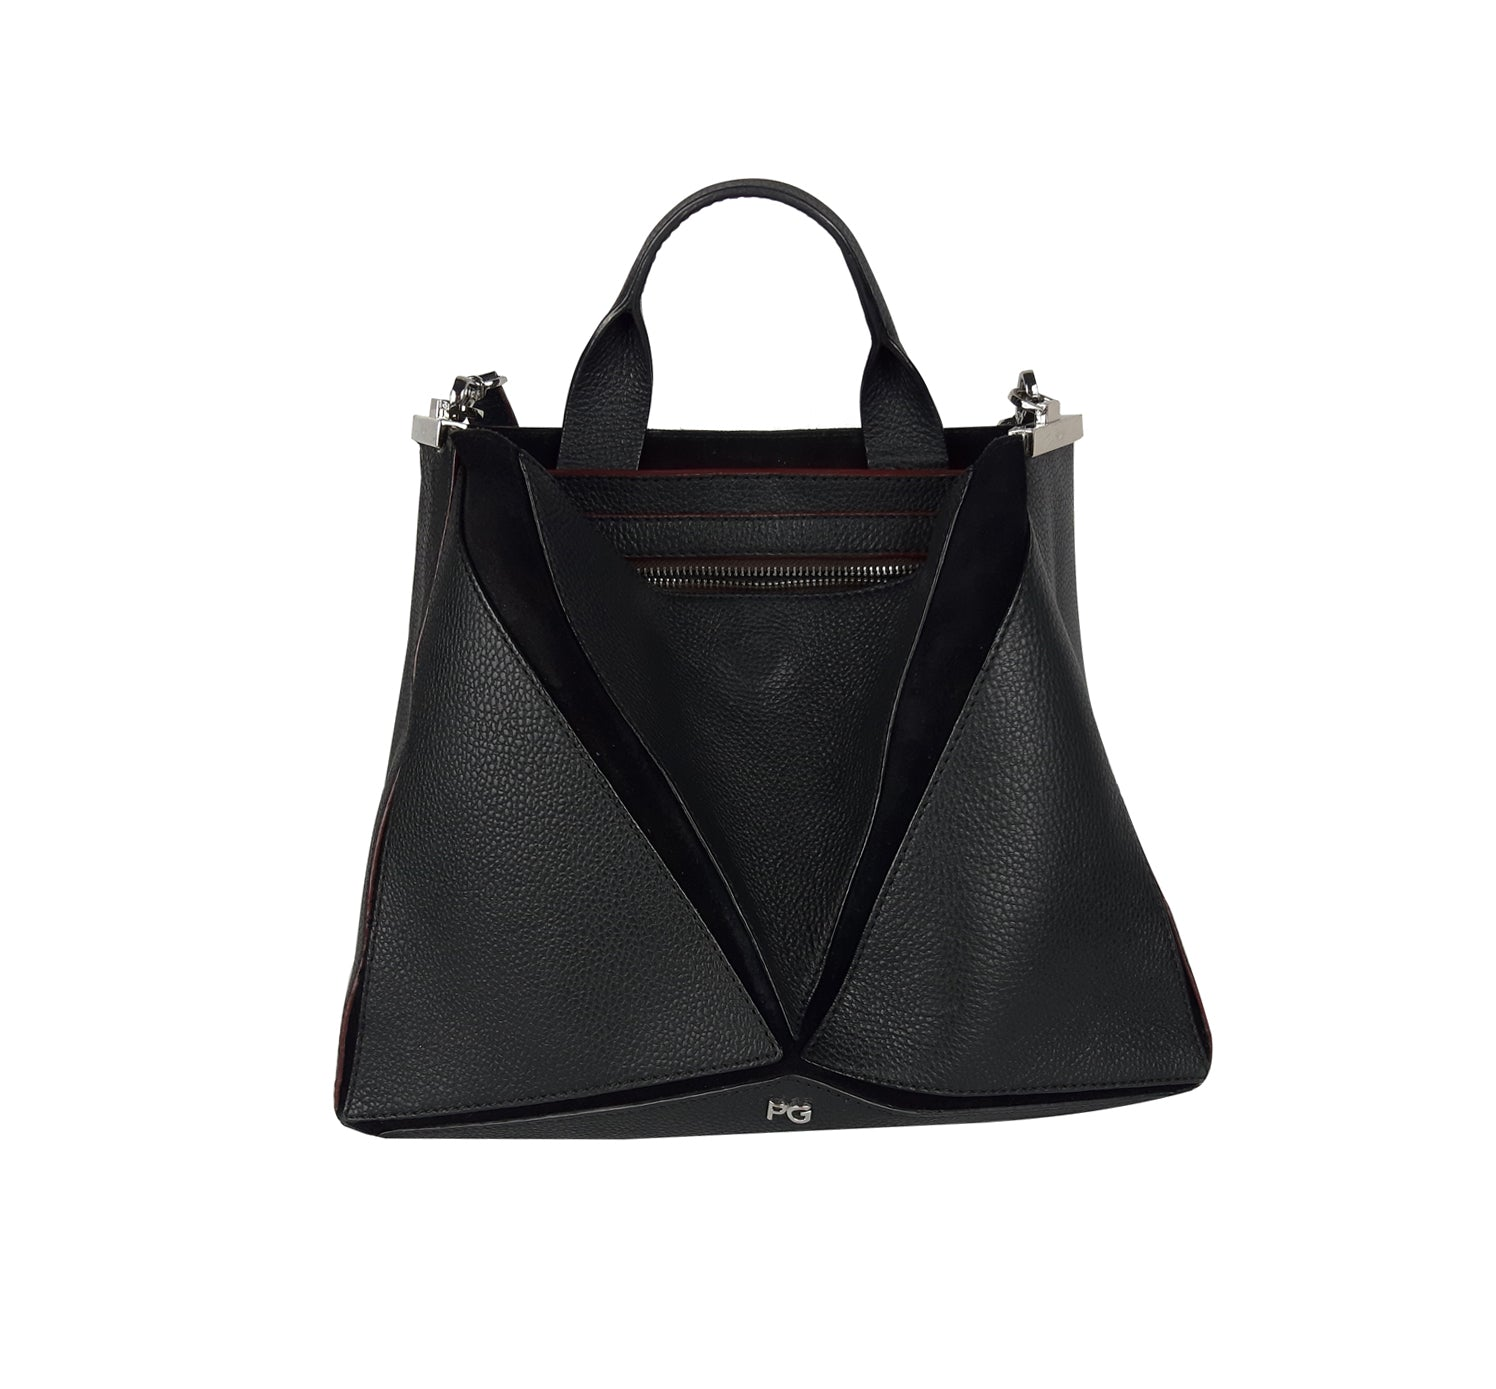 Purificacíon García Black Leather and Suede Tote Bag with Two Divisions Inside and Golden Details